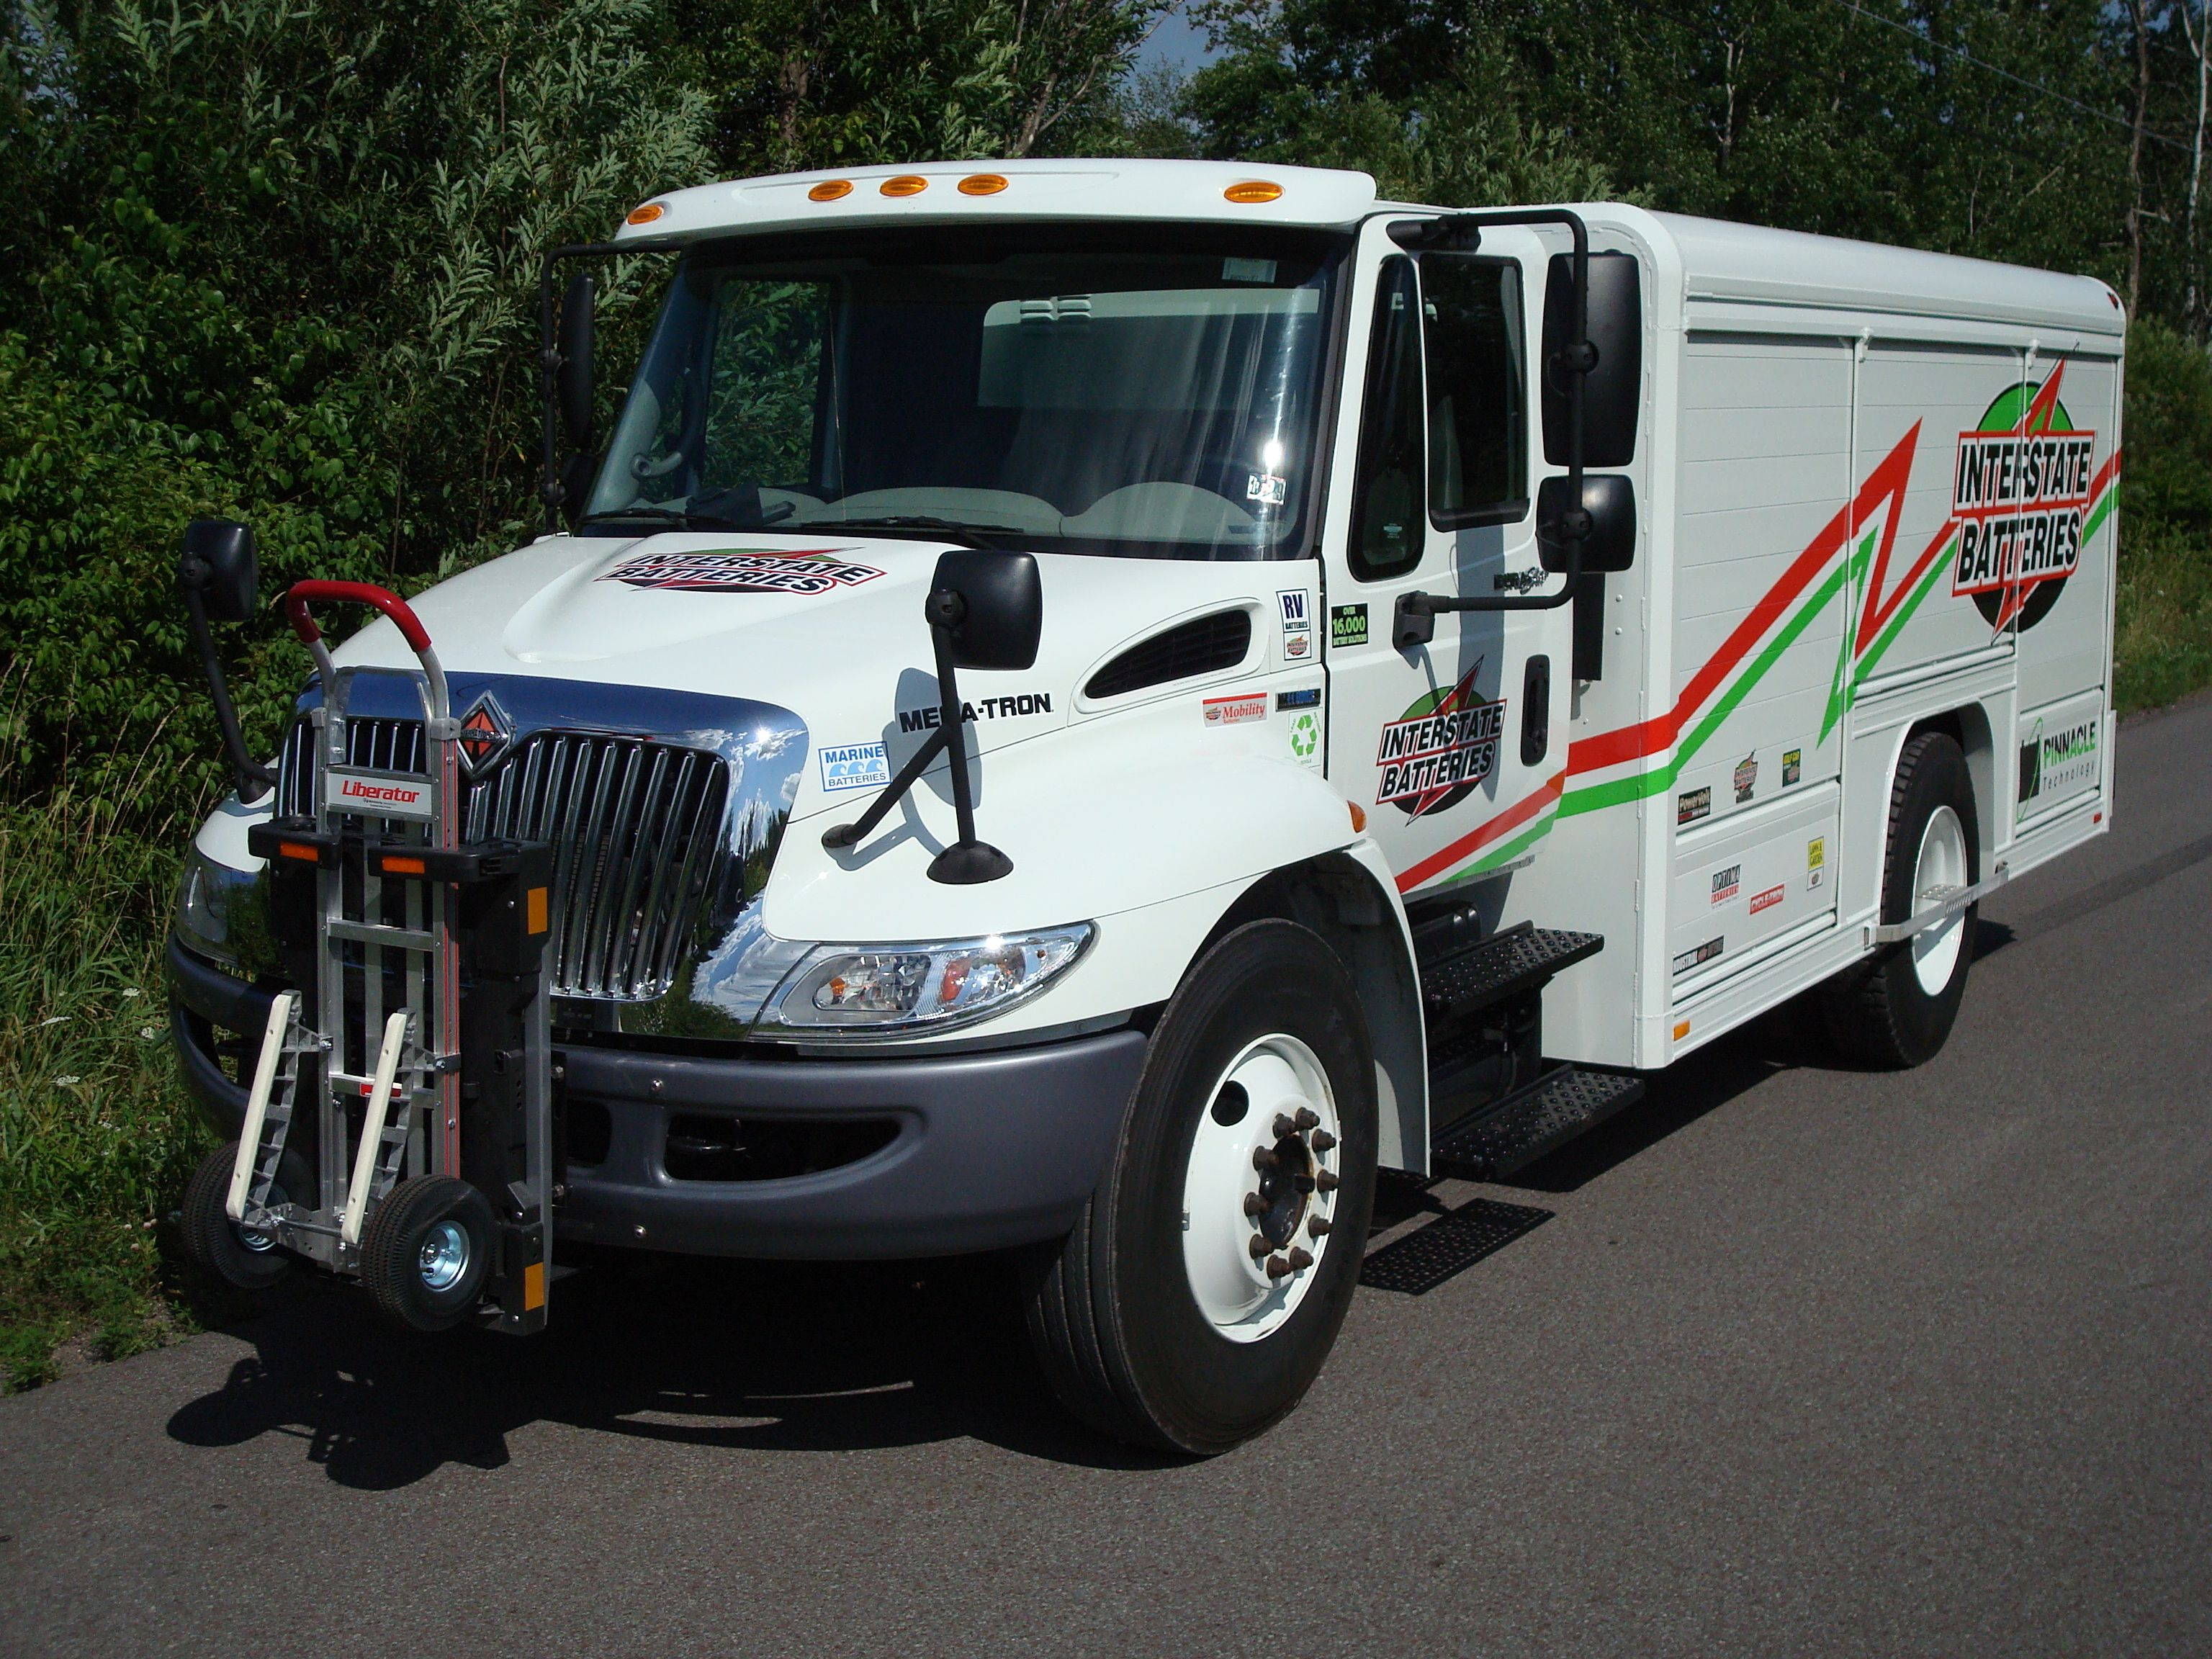 International Navistar Interstate Batteries Route Delivery Truck Equipped With Hts Systems Patented Hand Truck Sentry Recreational Vehicles Hand Trucks System